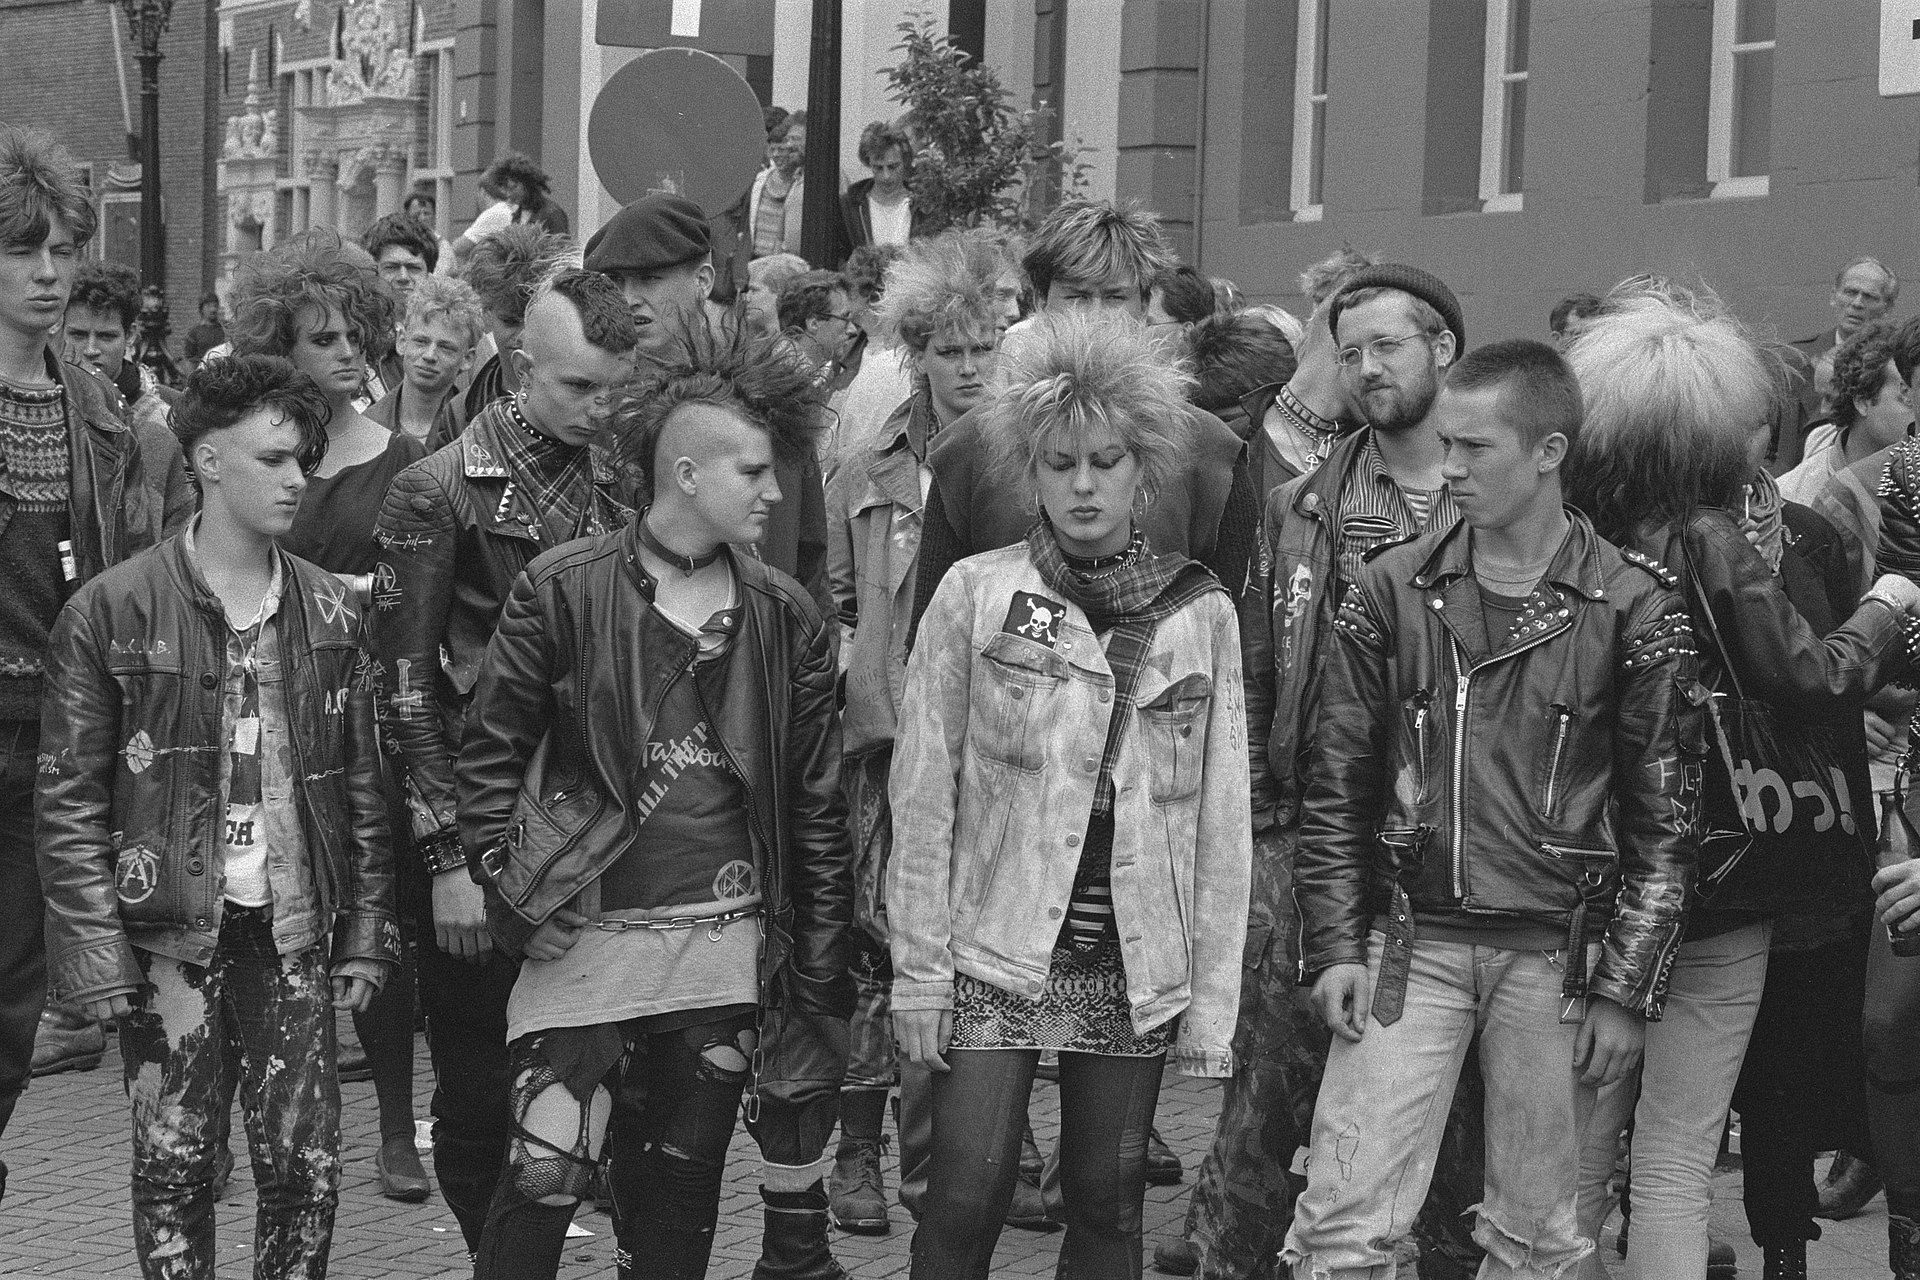 Punks black and white photo